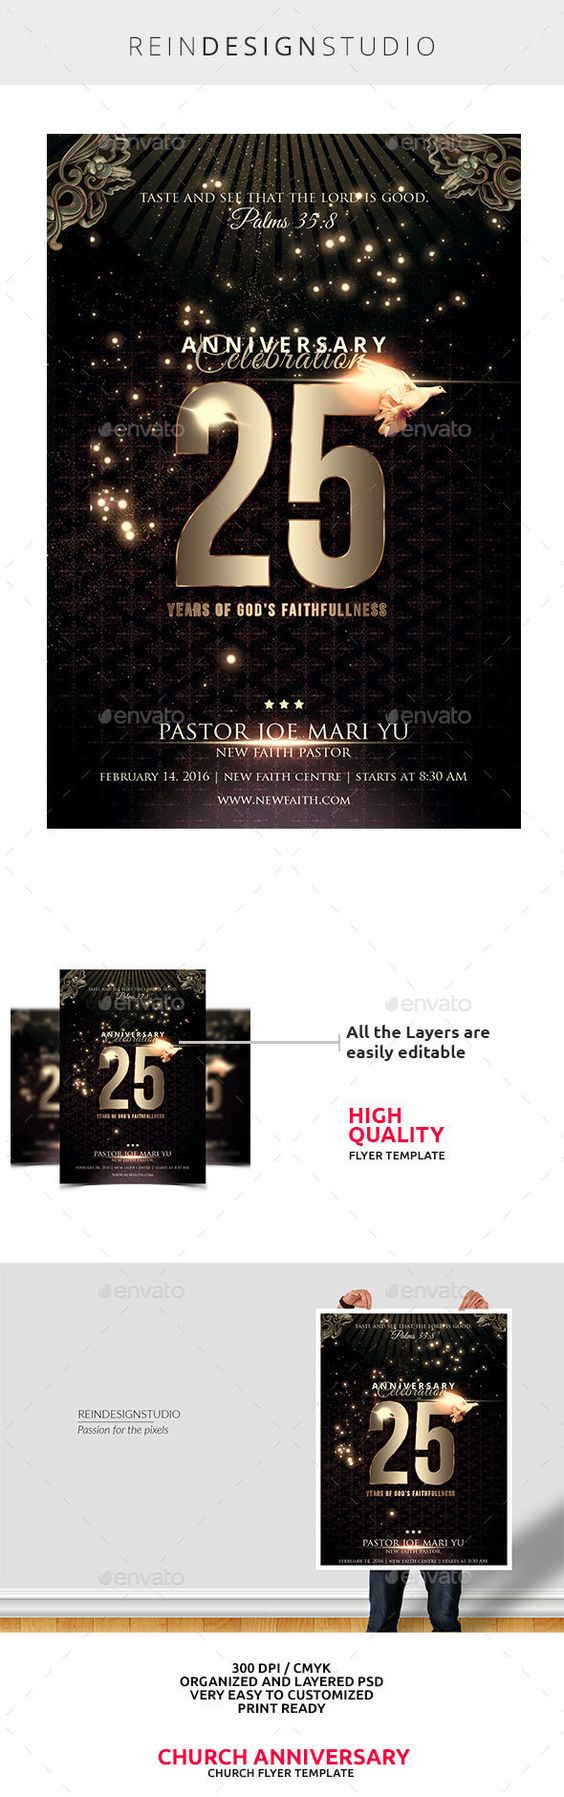 church anniversary flyer flyer template church and god church anniversary flyer template psd here graphicriver net